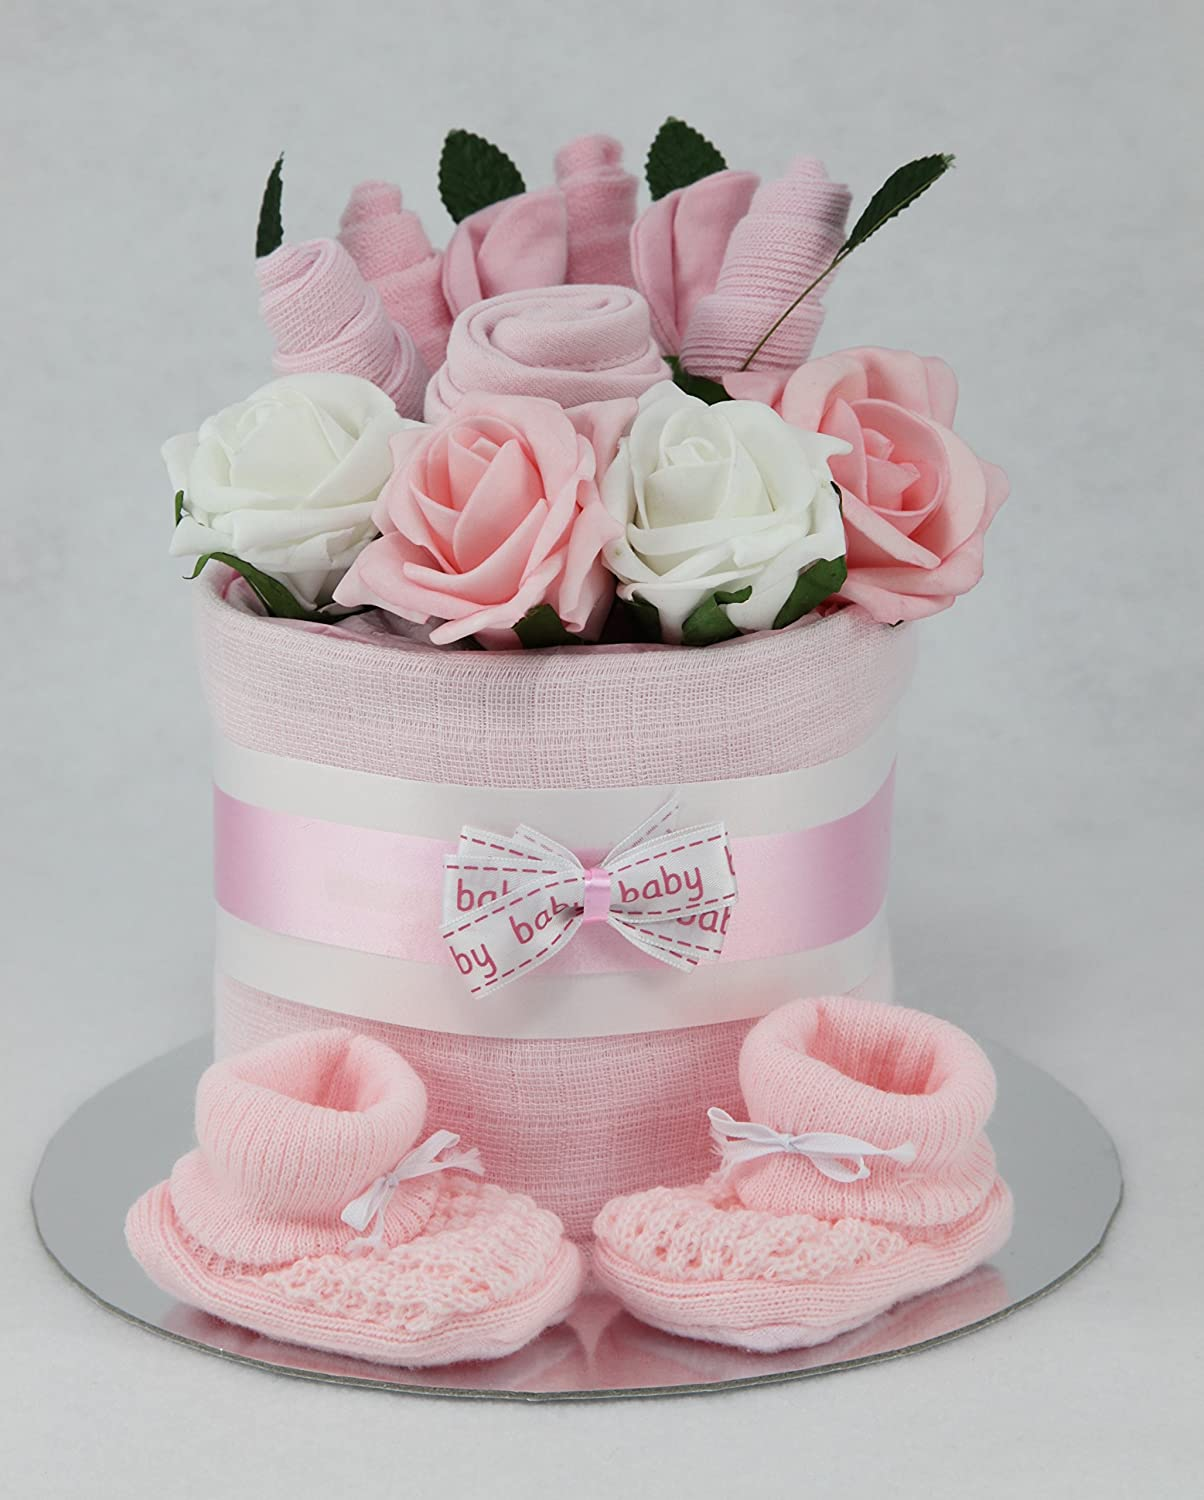 Baby Girl Clothes Flower Bouquet Nappy Cake New Born Baby Shower Gift Tiny Togs Ltd